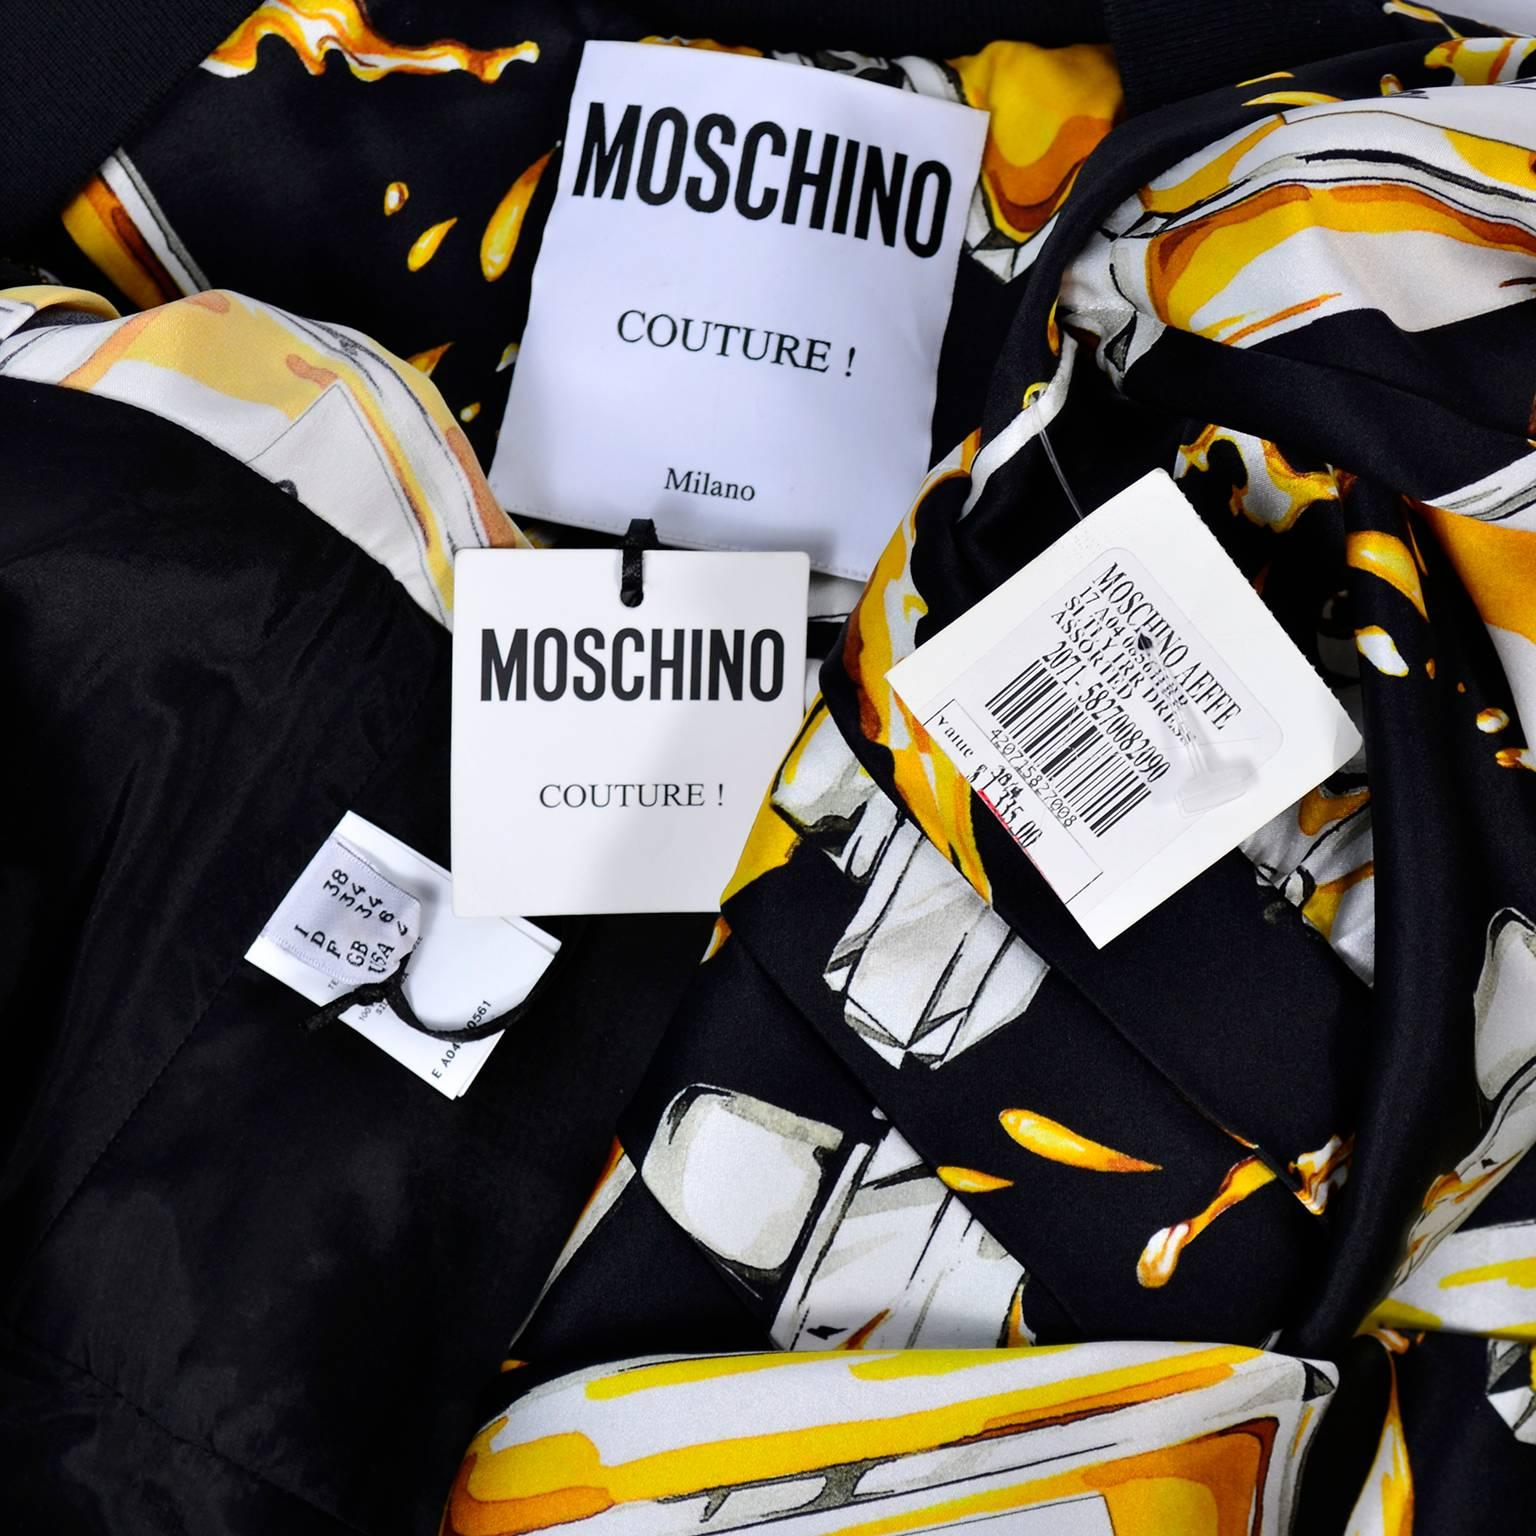 2016 Moschino Couture Dress in Satin